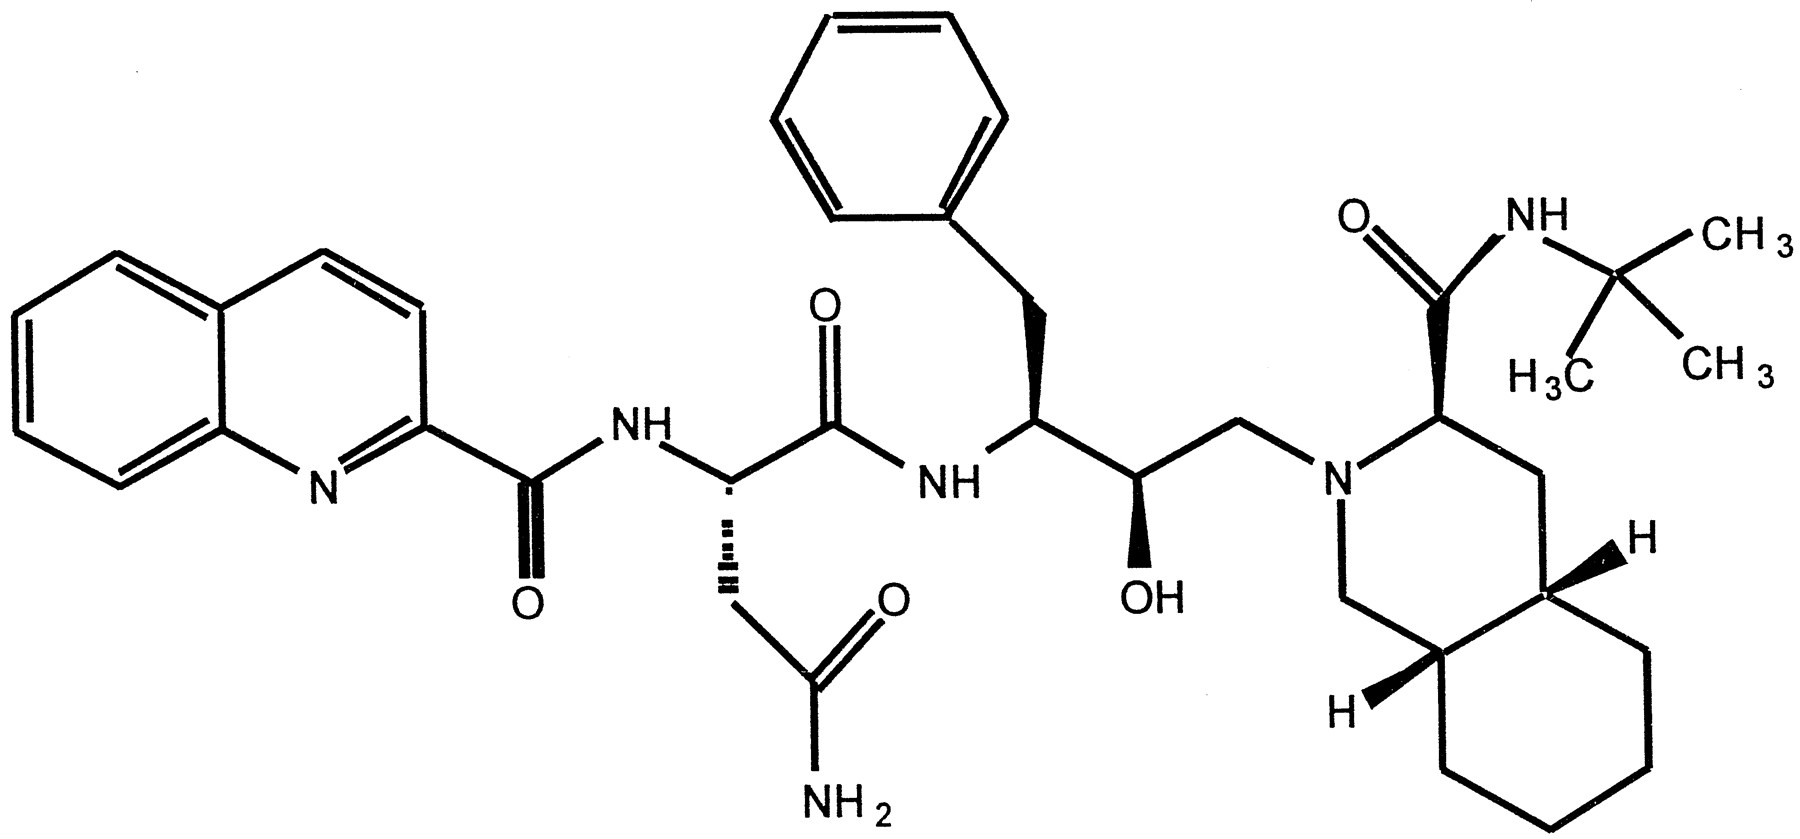 Saquinavir, an HIV Protease Inhibitor, Is Transported by P